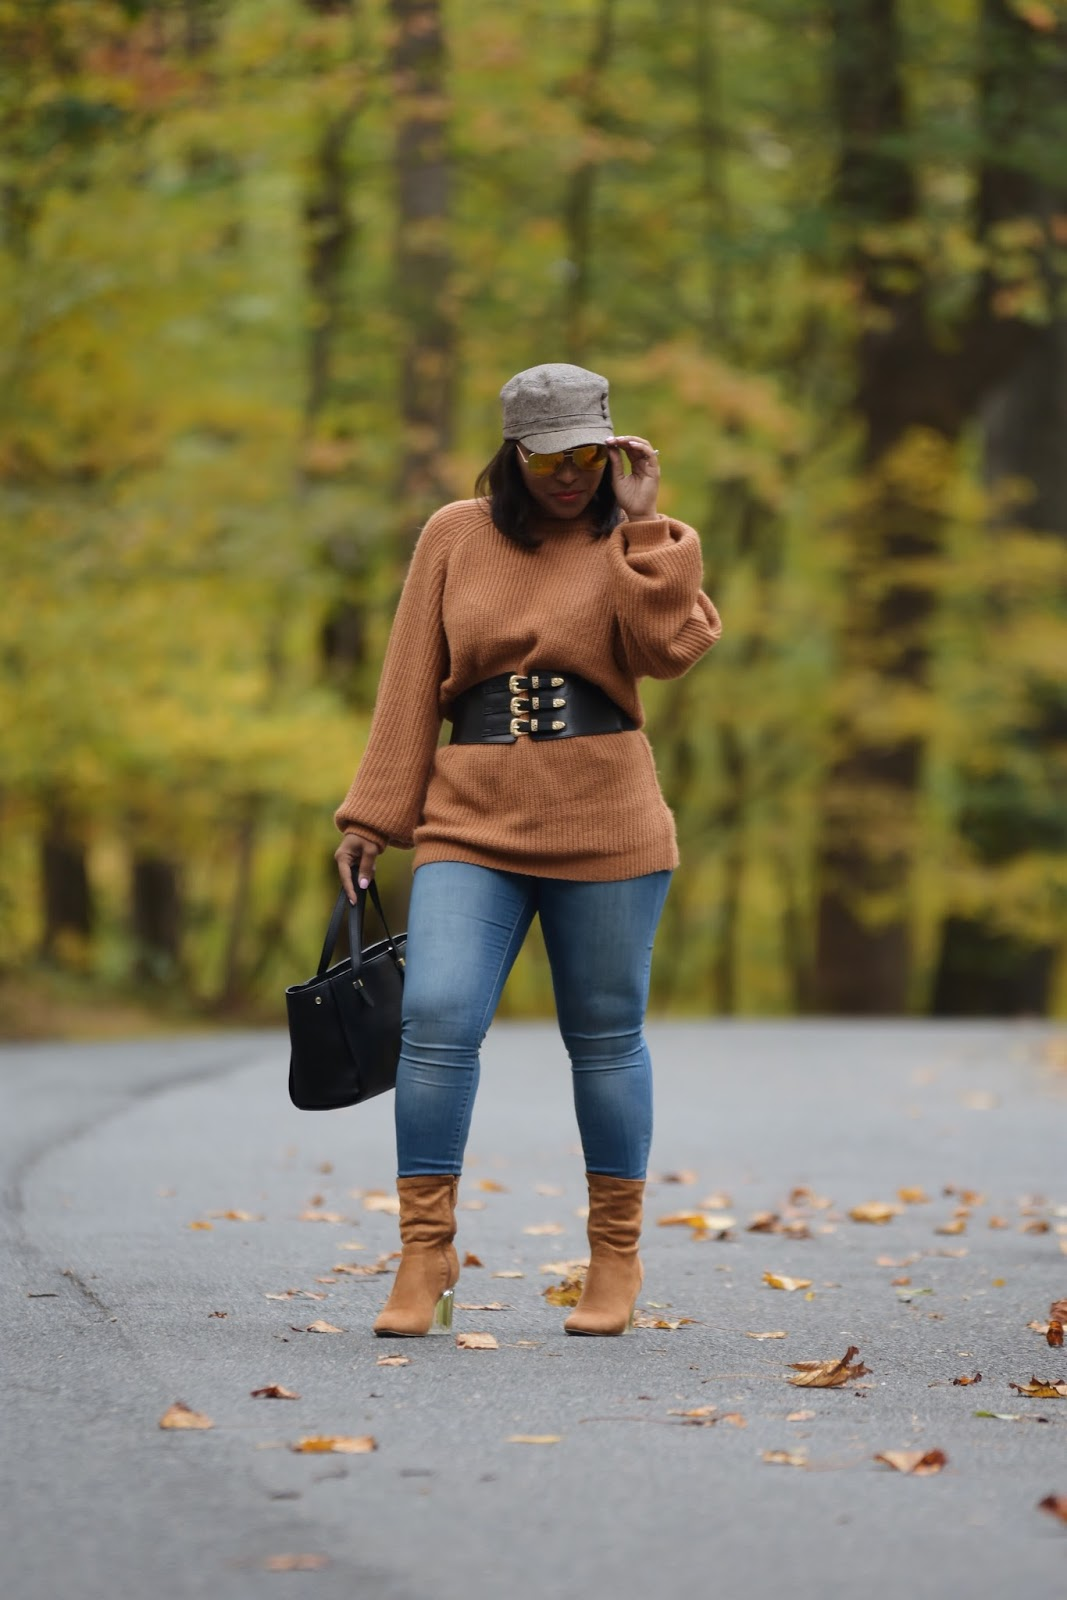 Fall foilage, fall outfits, forever21 sweaters, casual fall outfits, waist belts, rock creek park, dc bloggers, dominican bloggers